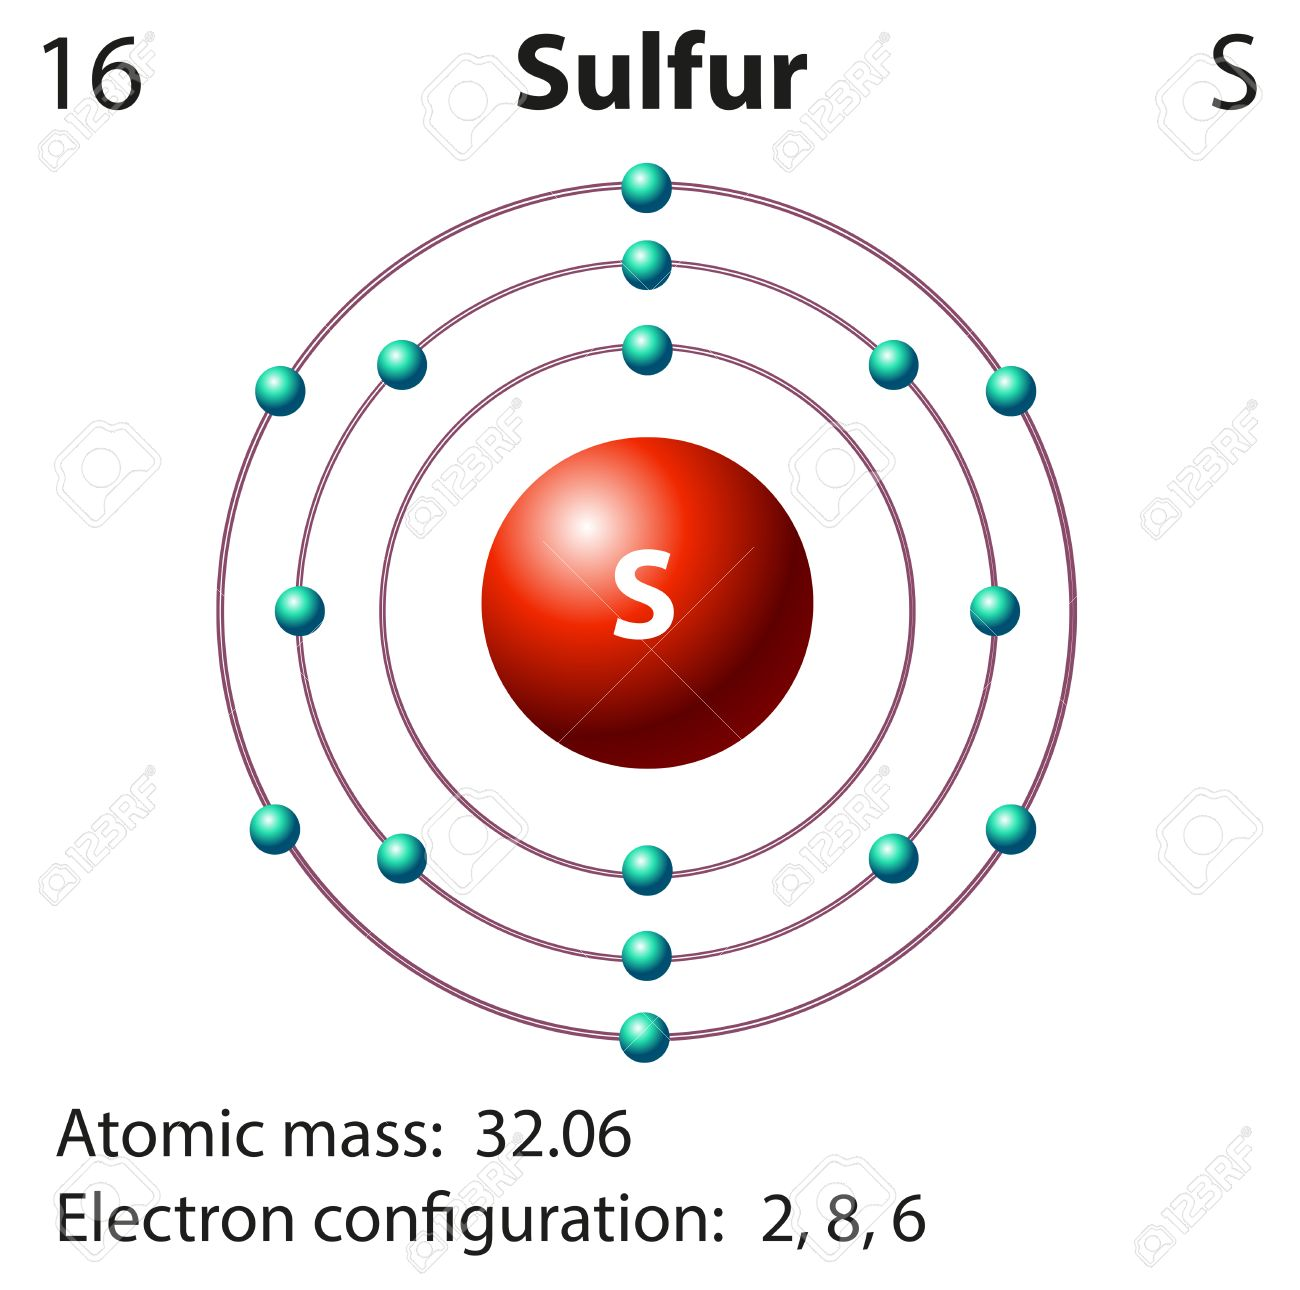 Diagram of the atom sulfur circuit diagram symbols diagram representation of the element sulfur illustration royalty rh 123rf com argon atom diagram diagram of the atom sulfur ccuart Image collections